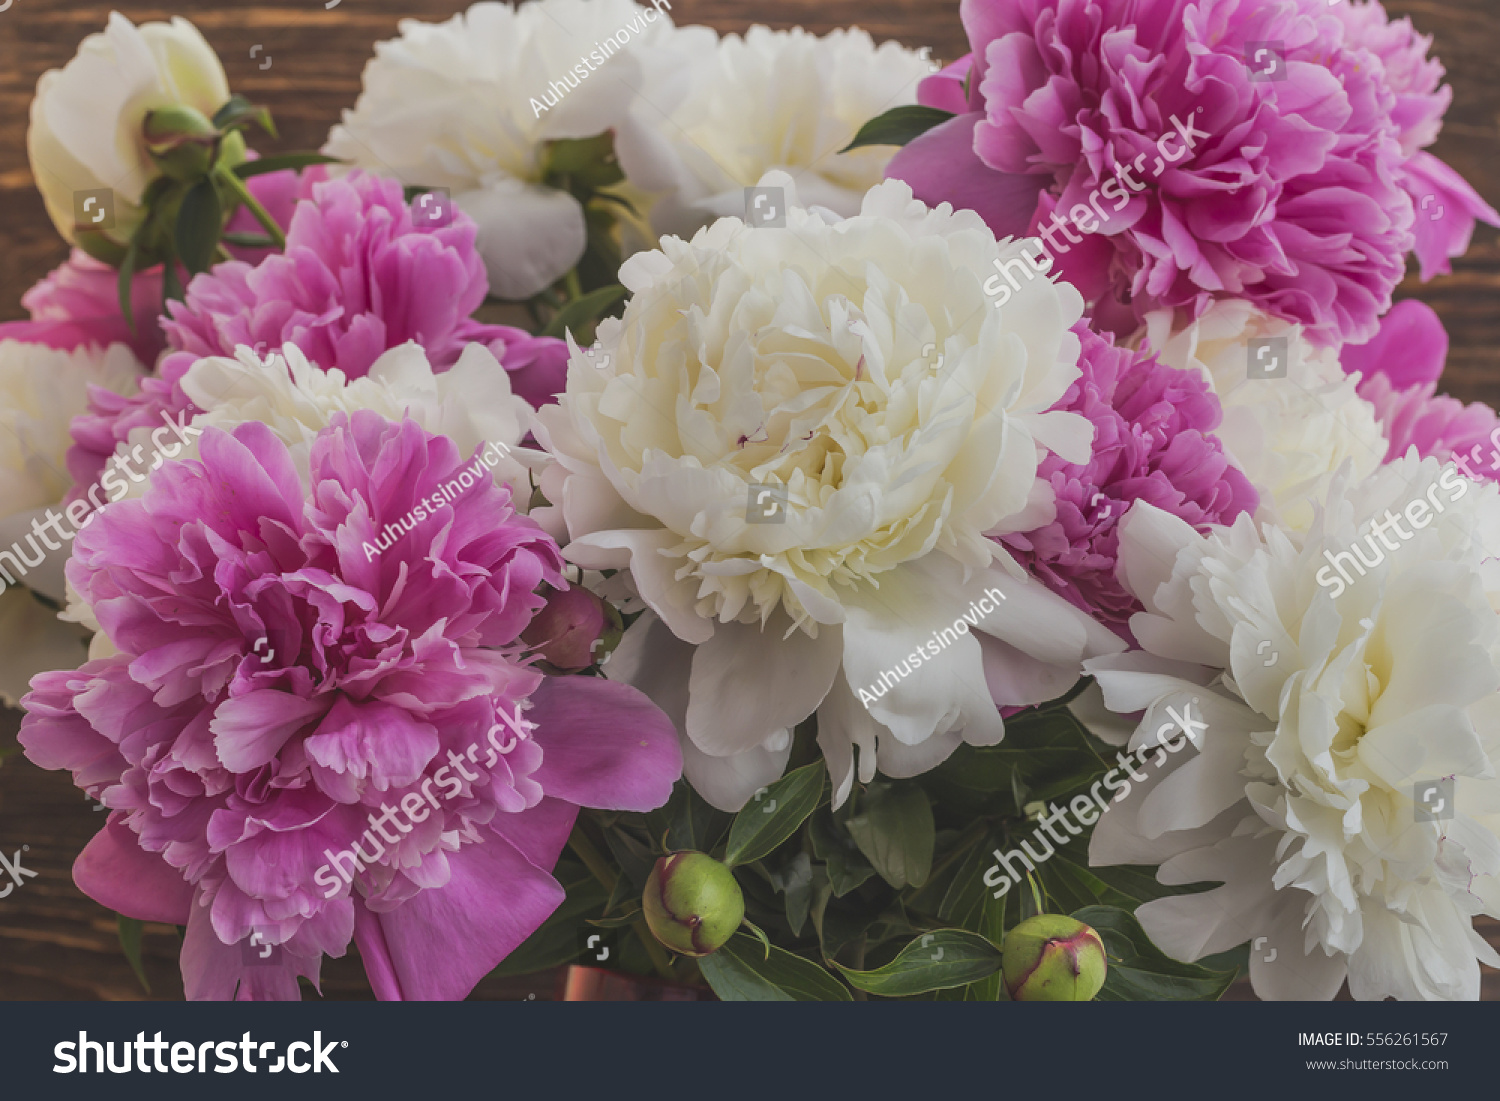 Royalty free bouquet of beautiful flowers of peonies 556261567 bouquet of beautiful flowers of peonies 556261567 izmirmasajfo